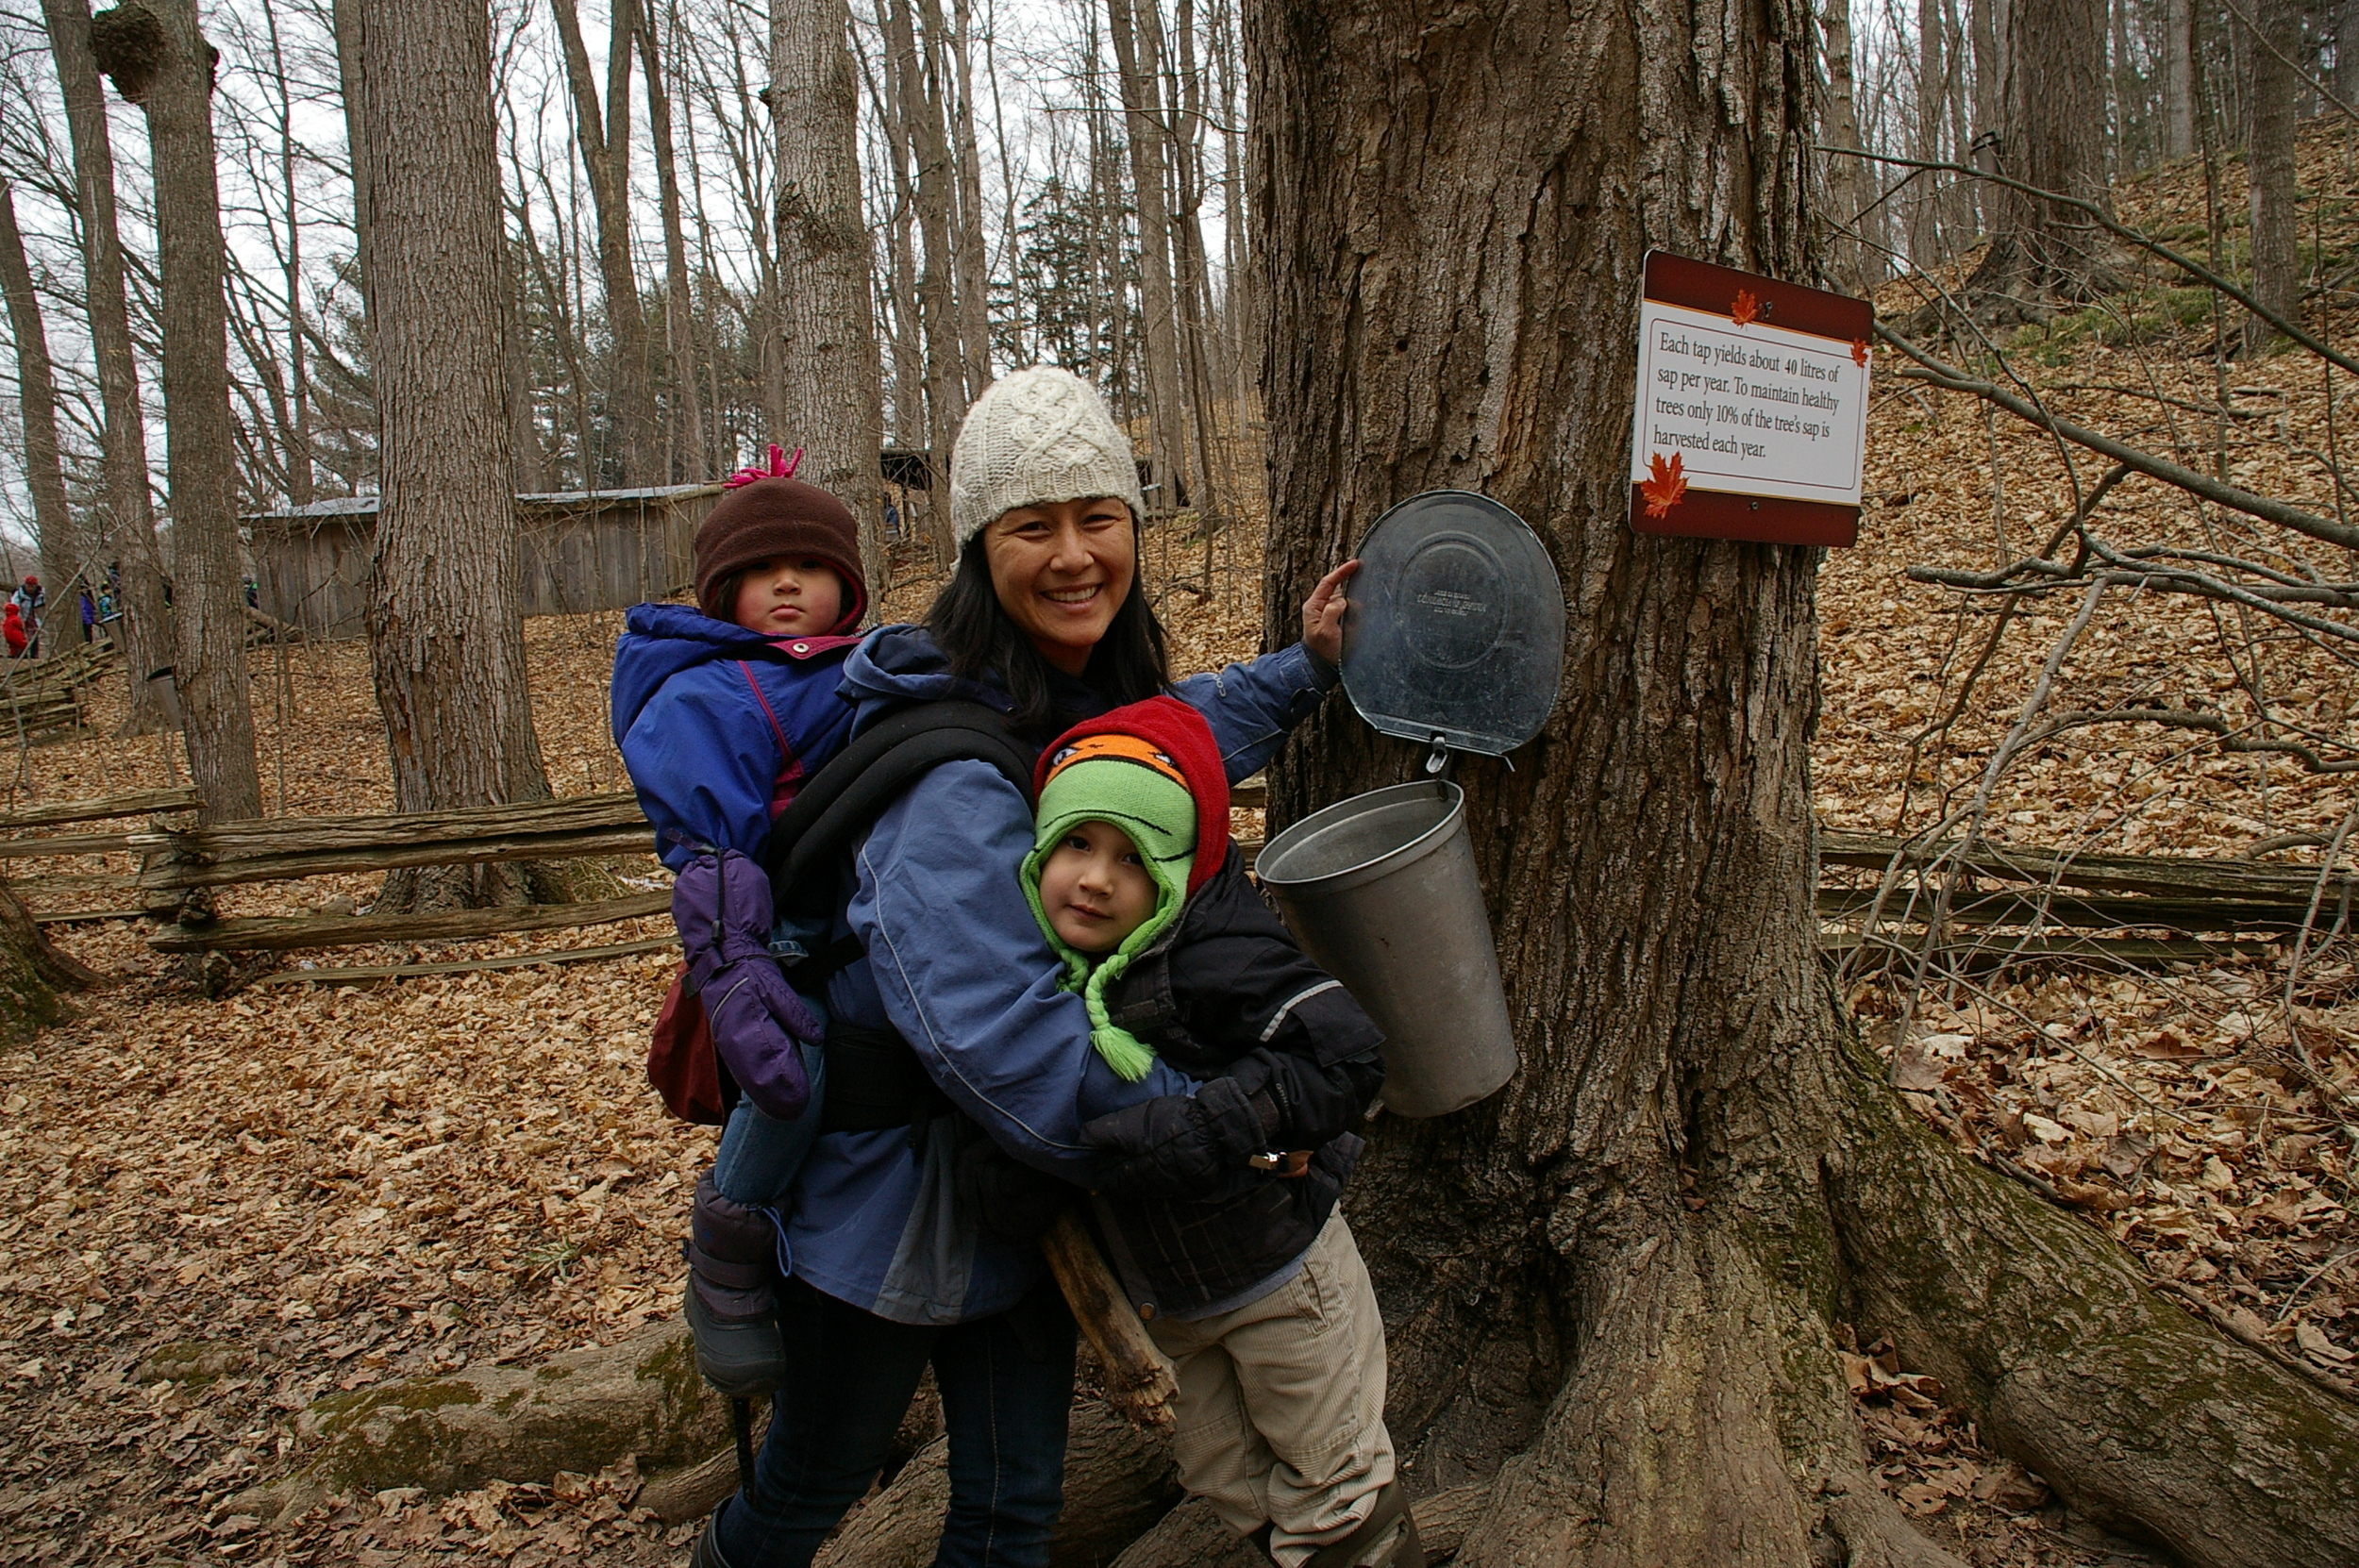 Children and their caregivers on a walk at the maple syrup farm.